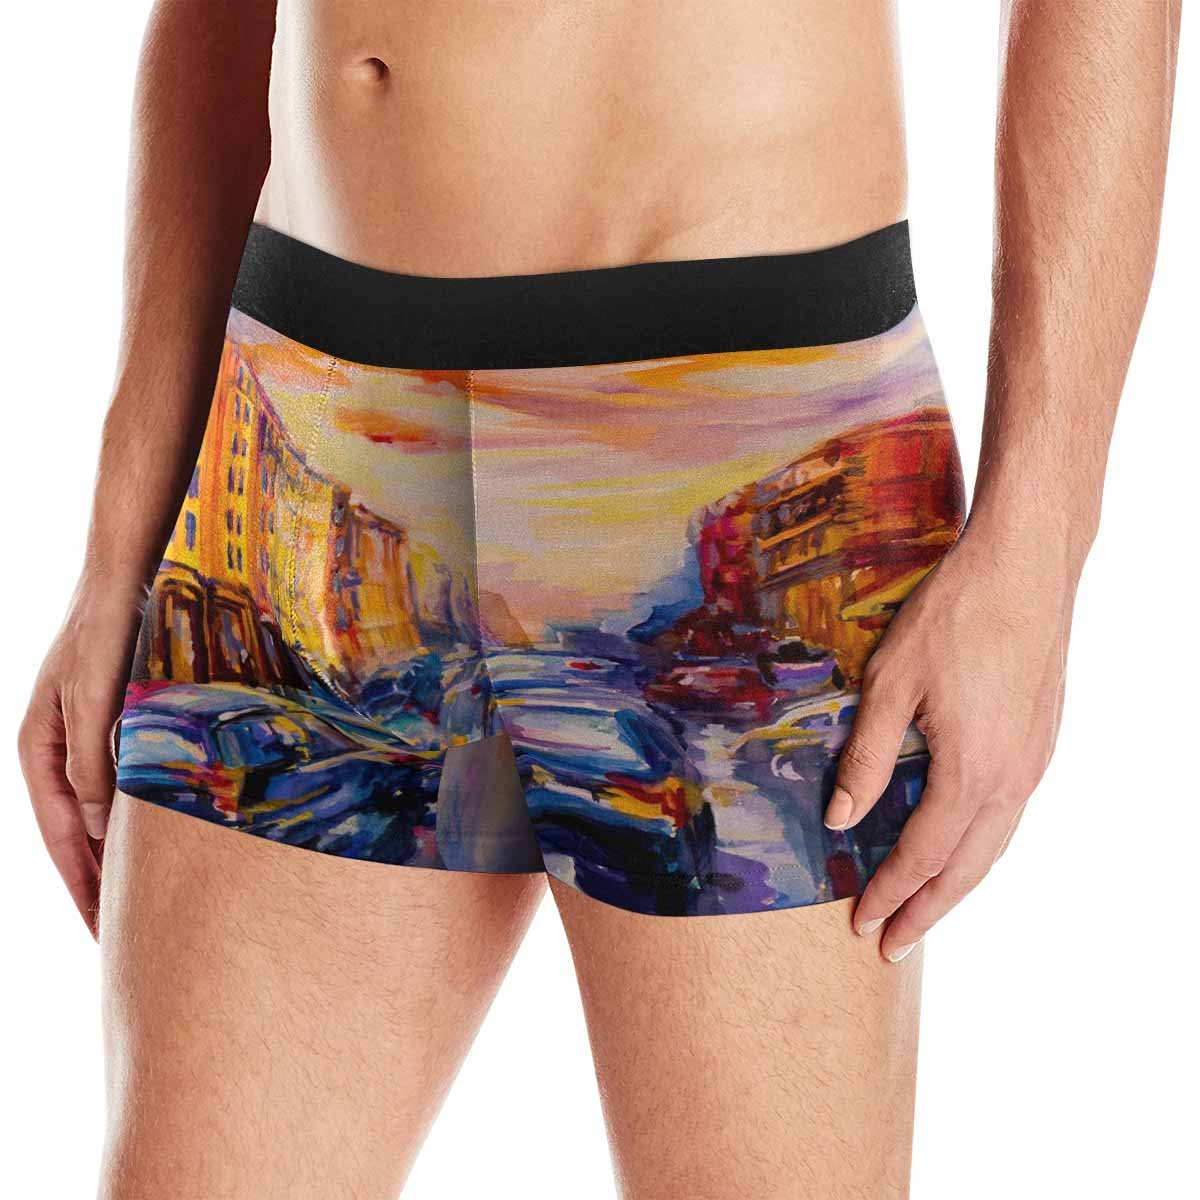 XS-3XL INTERESTPRINT Mens Boxer Briefs Underwear Scenic Cityscape Oil Painting View